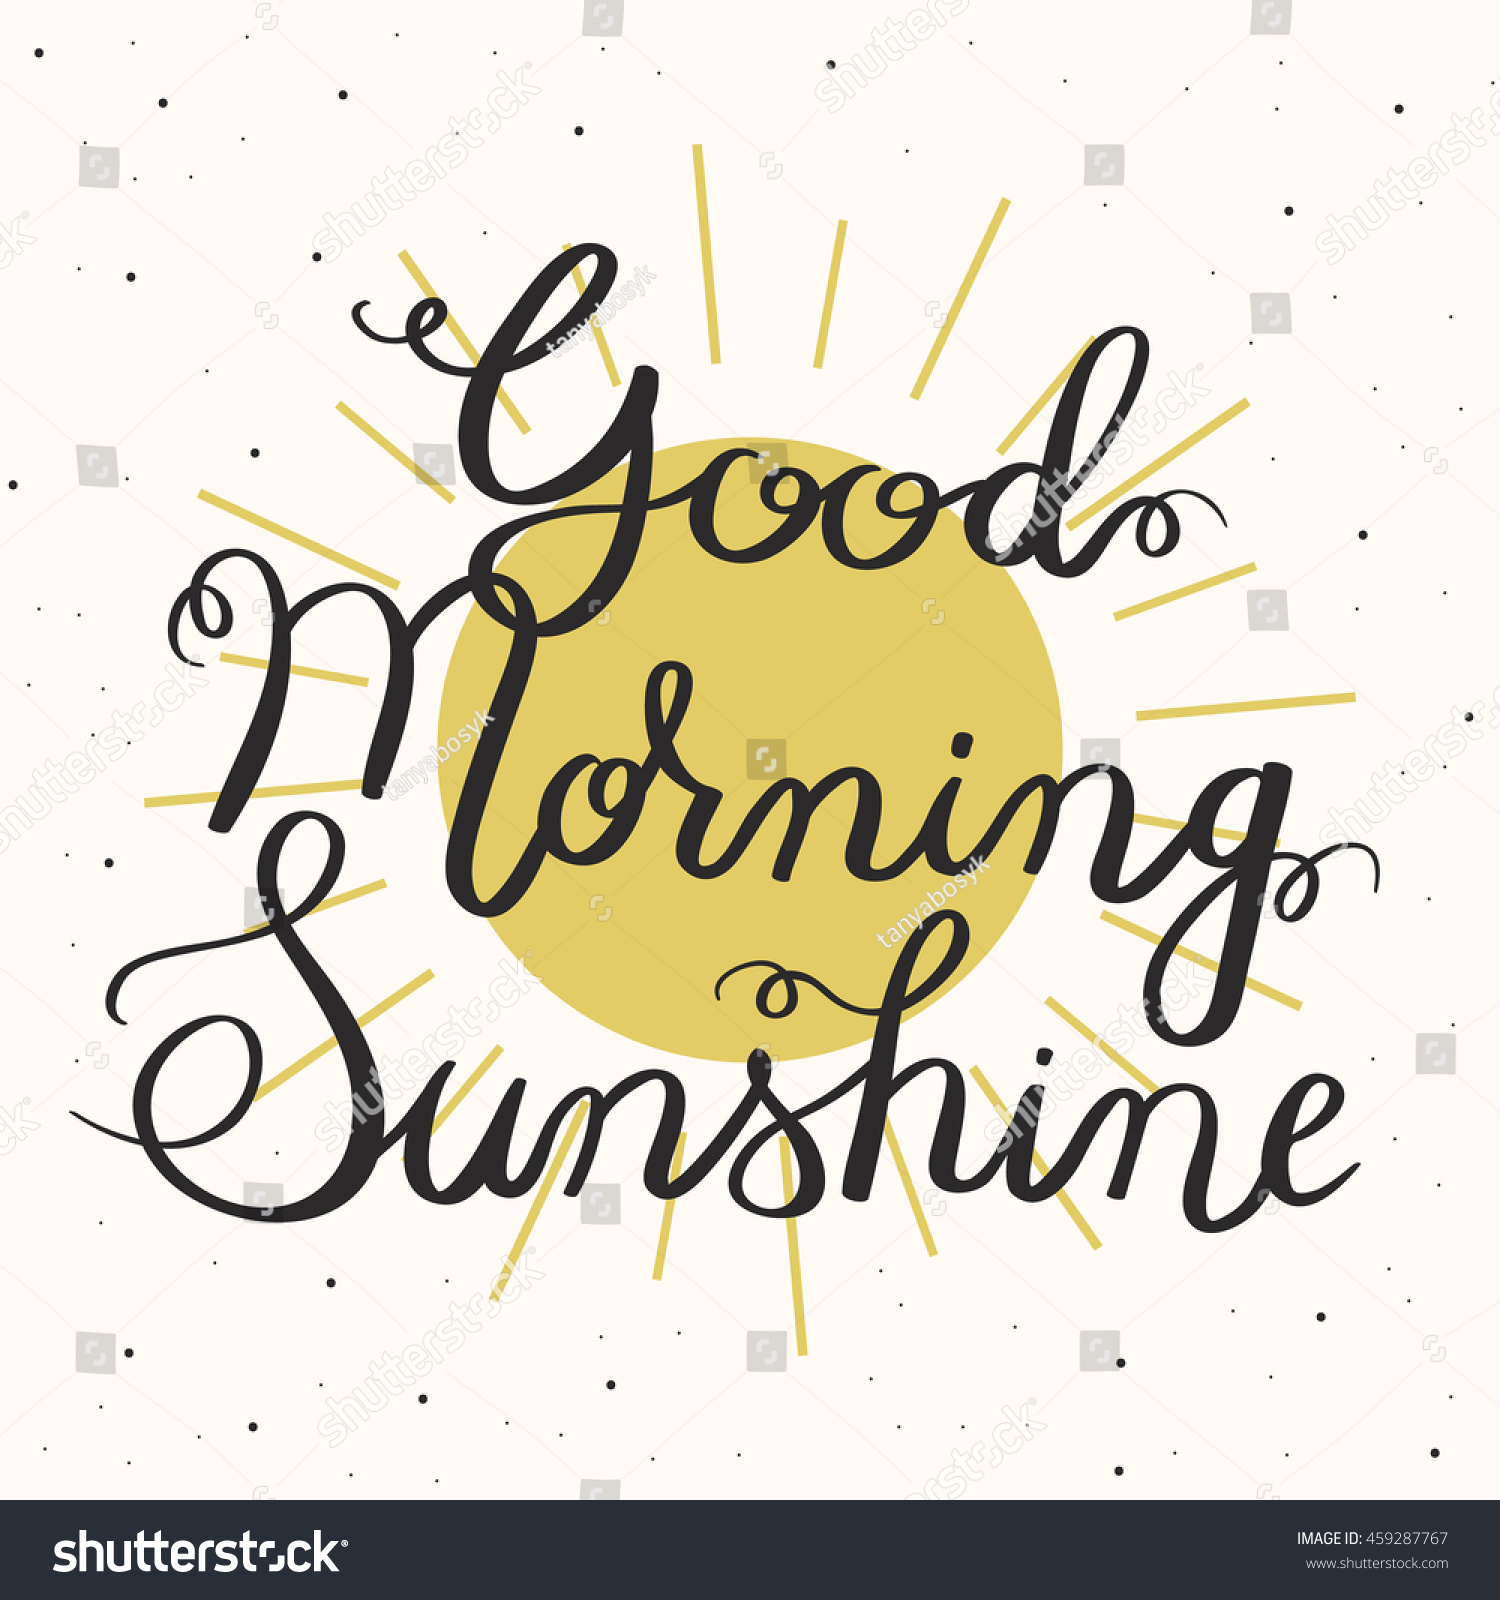 Good Morning Sunshine Letter : Good morning sunshine hand drawn typographic design